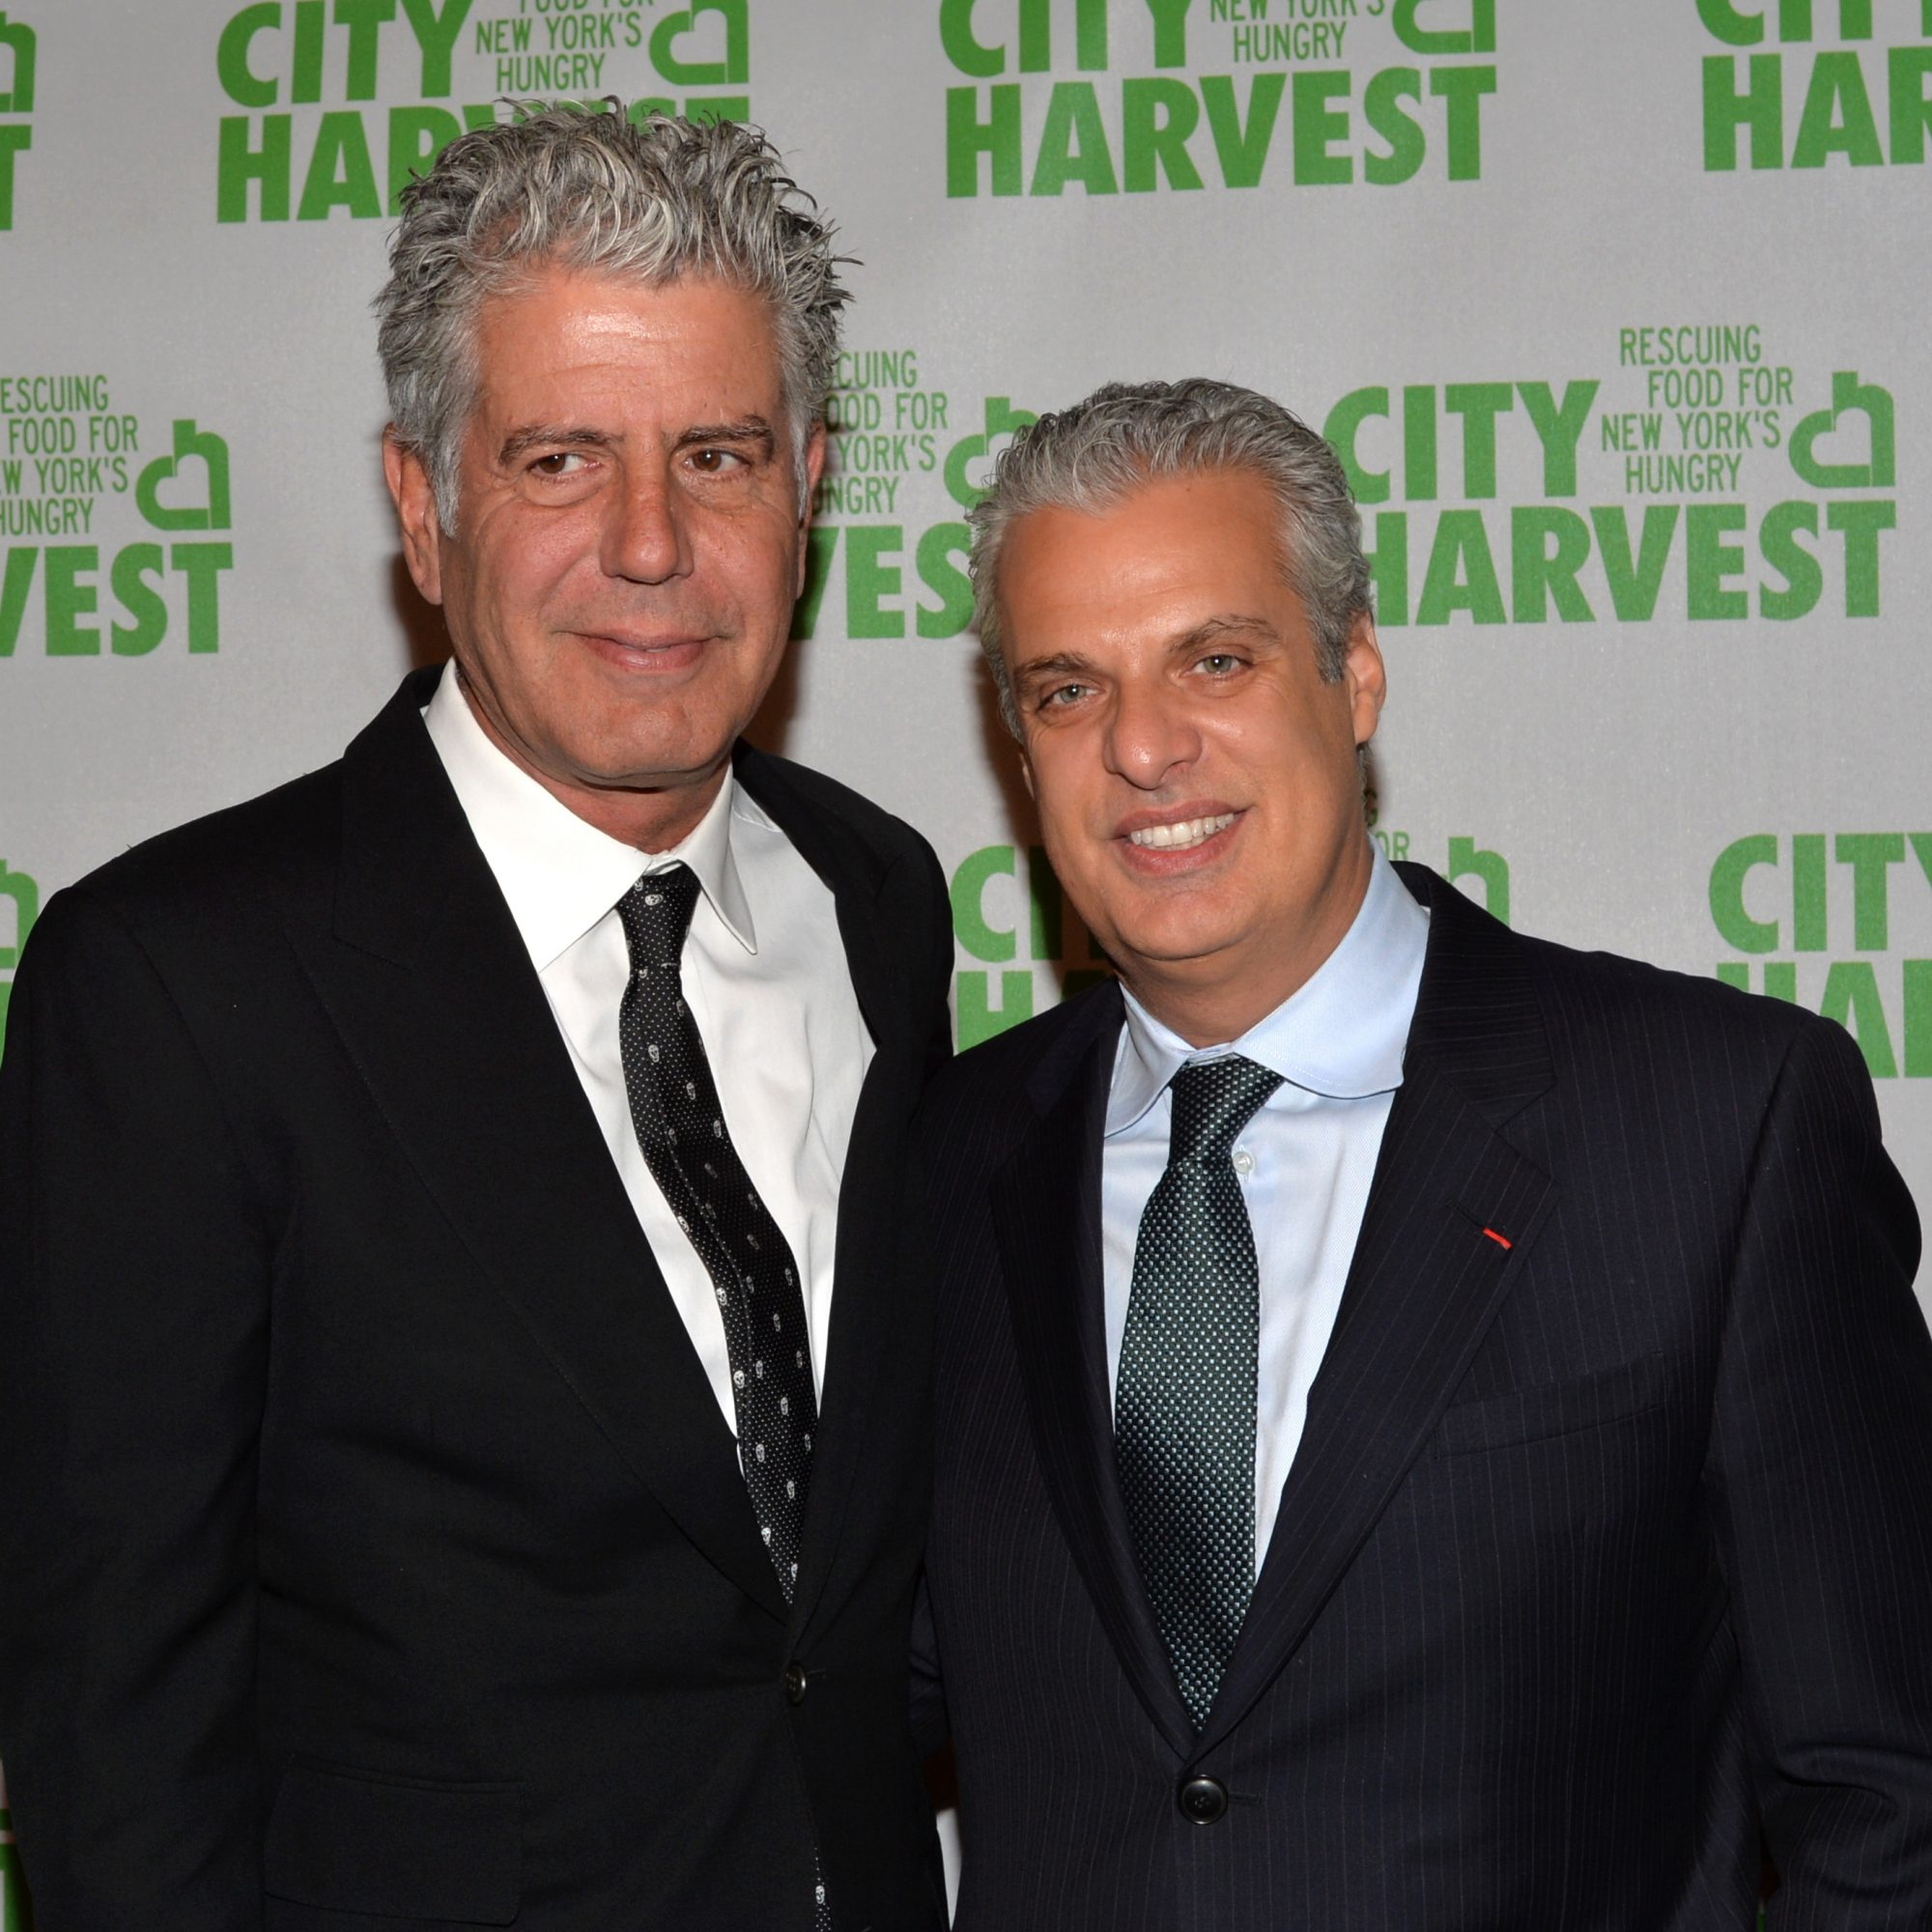 See the Anthony Bourdain-Eric Ripert Action Movie That Definitely Isn't Happening